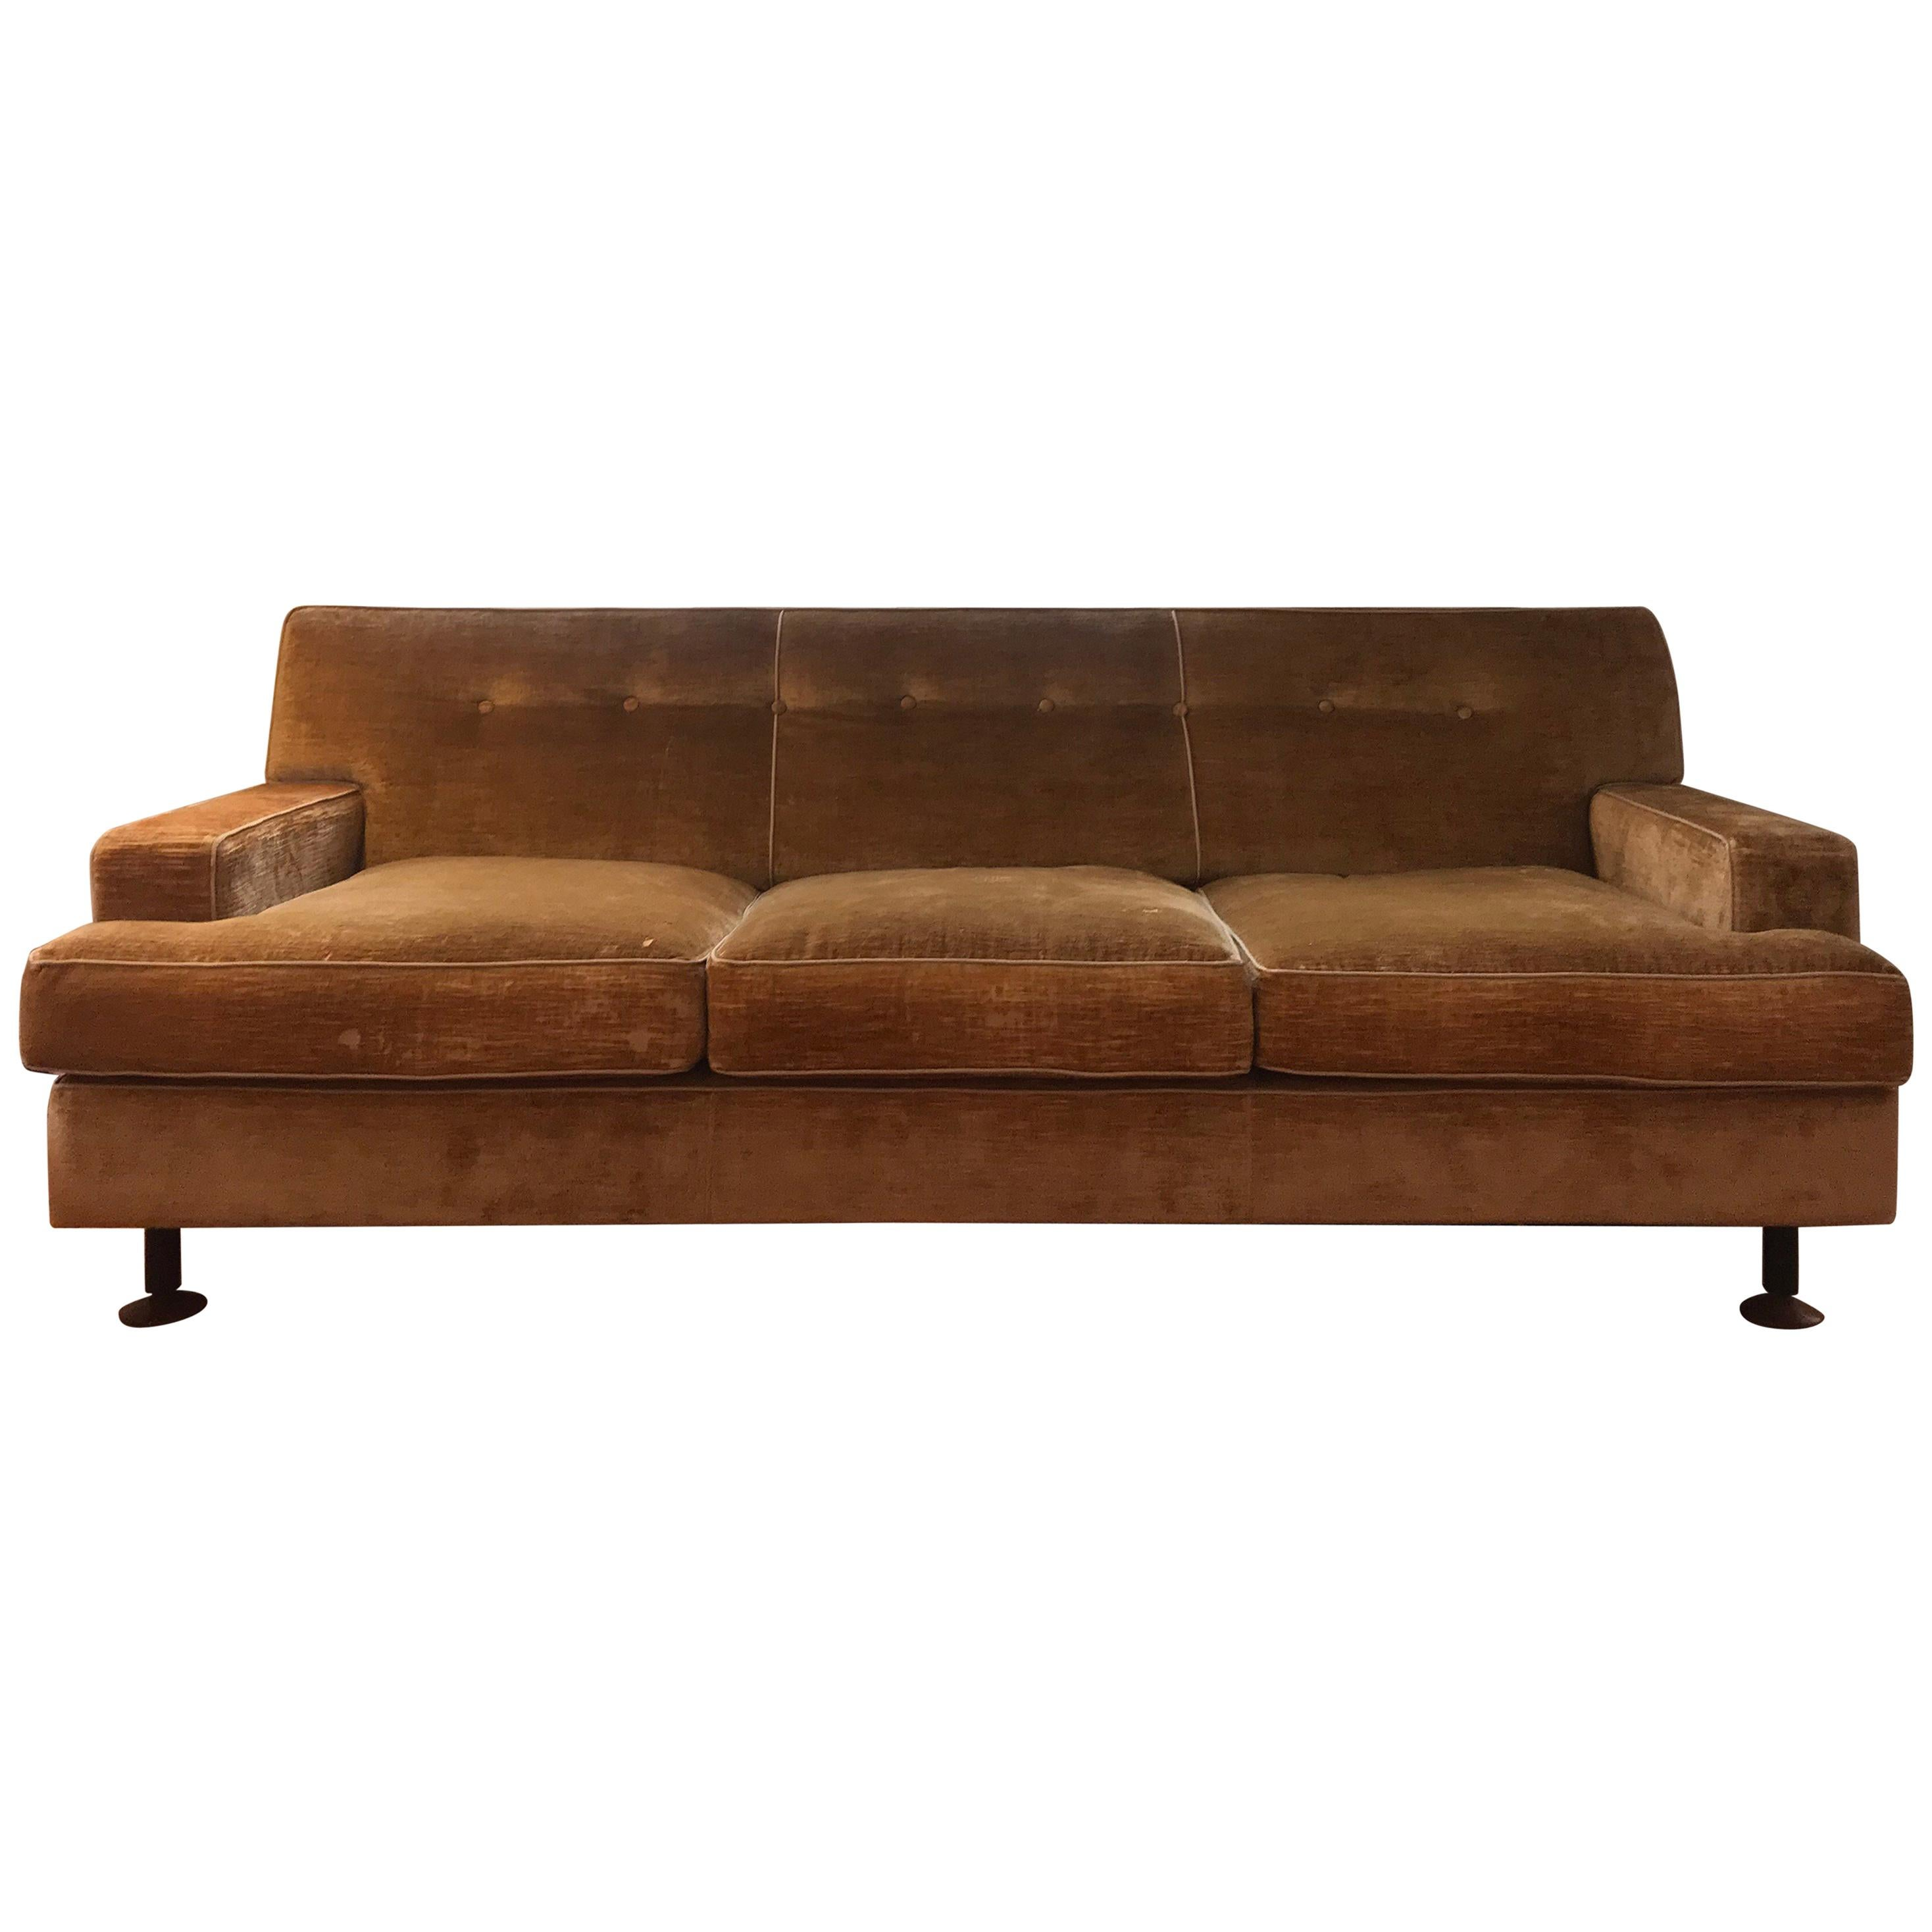 Marco Zanuso Set of Two Square Sofa and Two Armchairs for Arfnex, 1960s